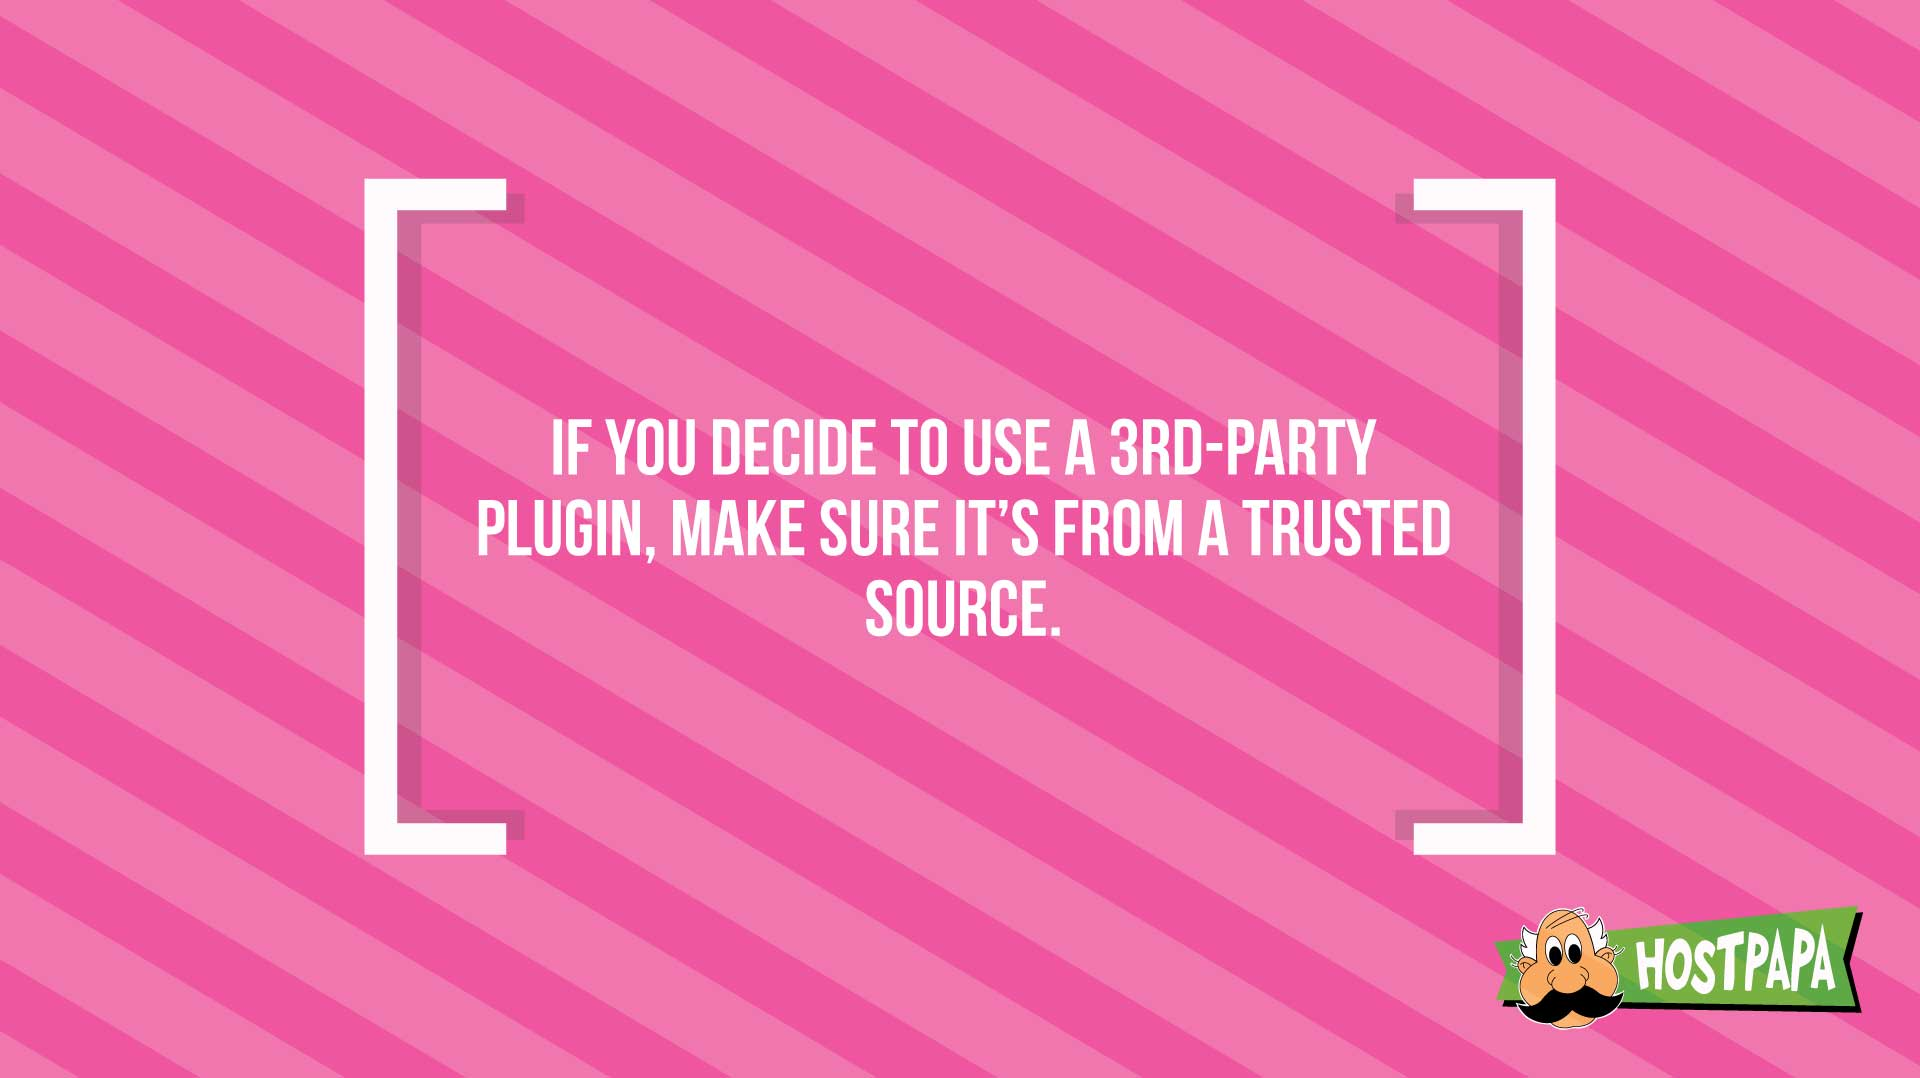 If you decide to use a 3rd party plugin, make sure it's from a trusted source